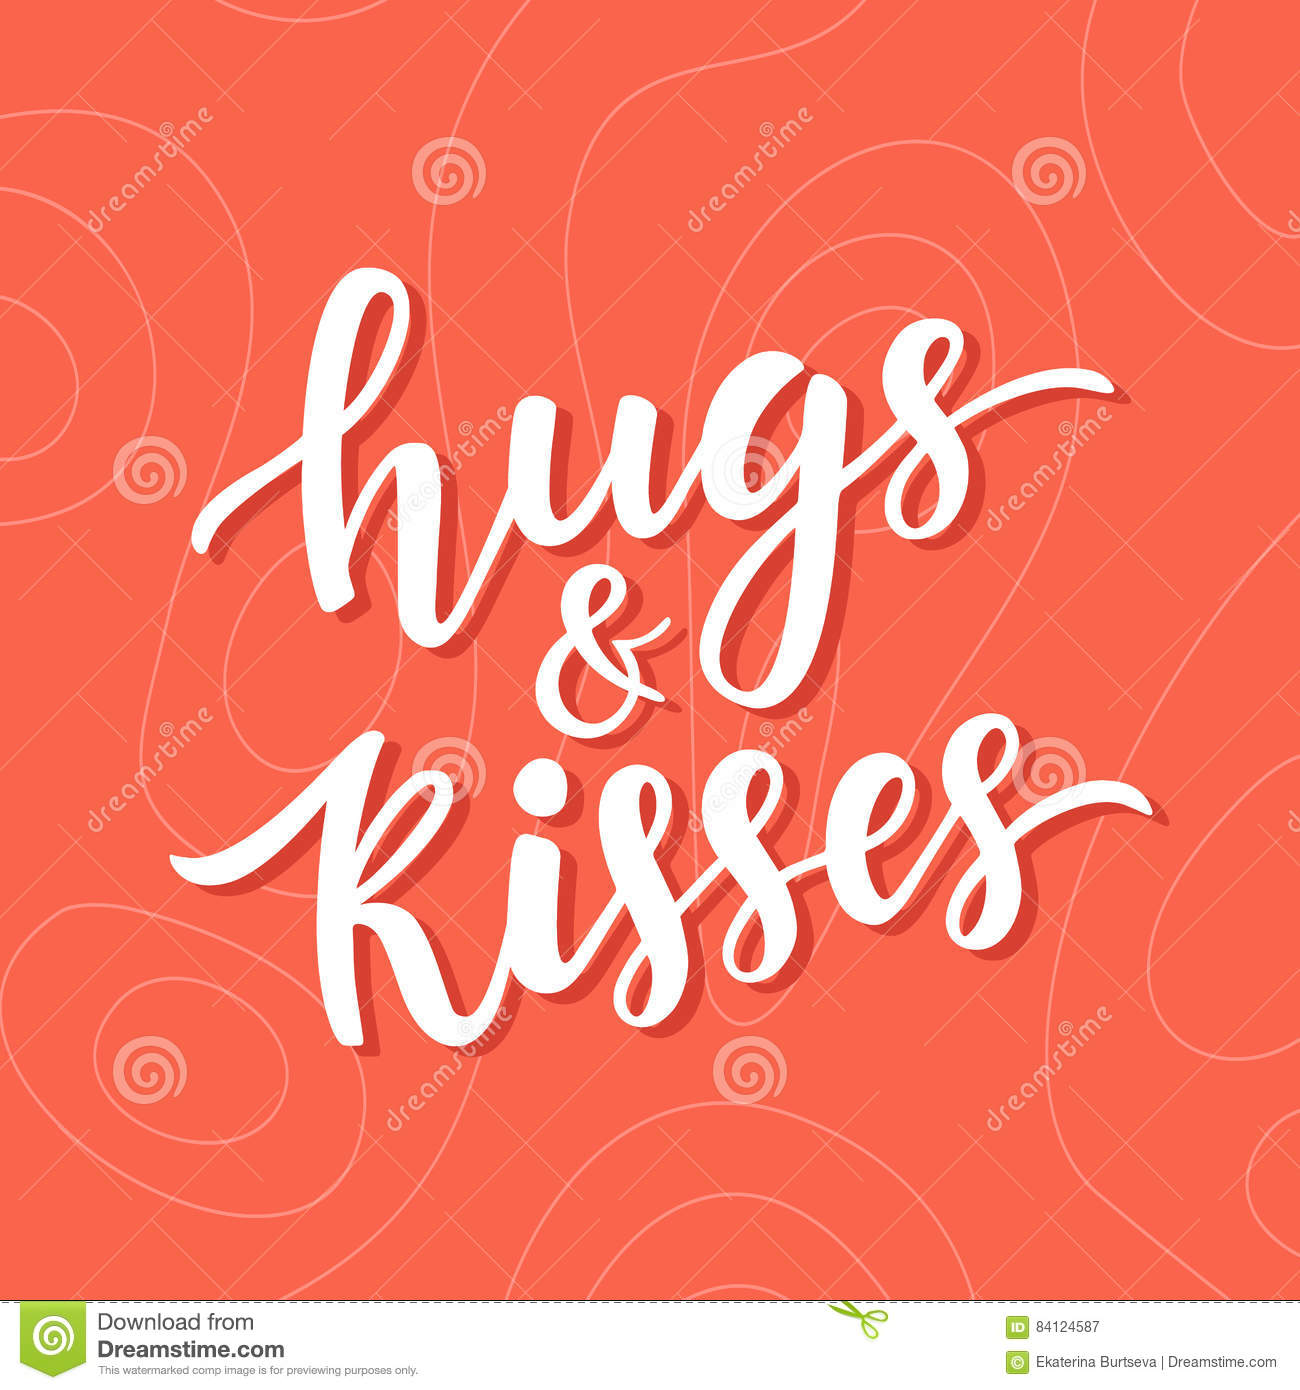 Hugs And Kisses Hand Drawn Brush Lettering Stock Image - Image of ...